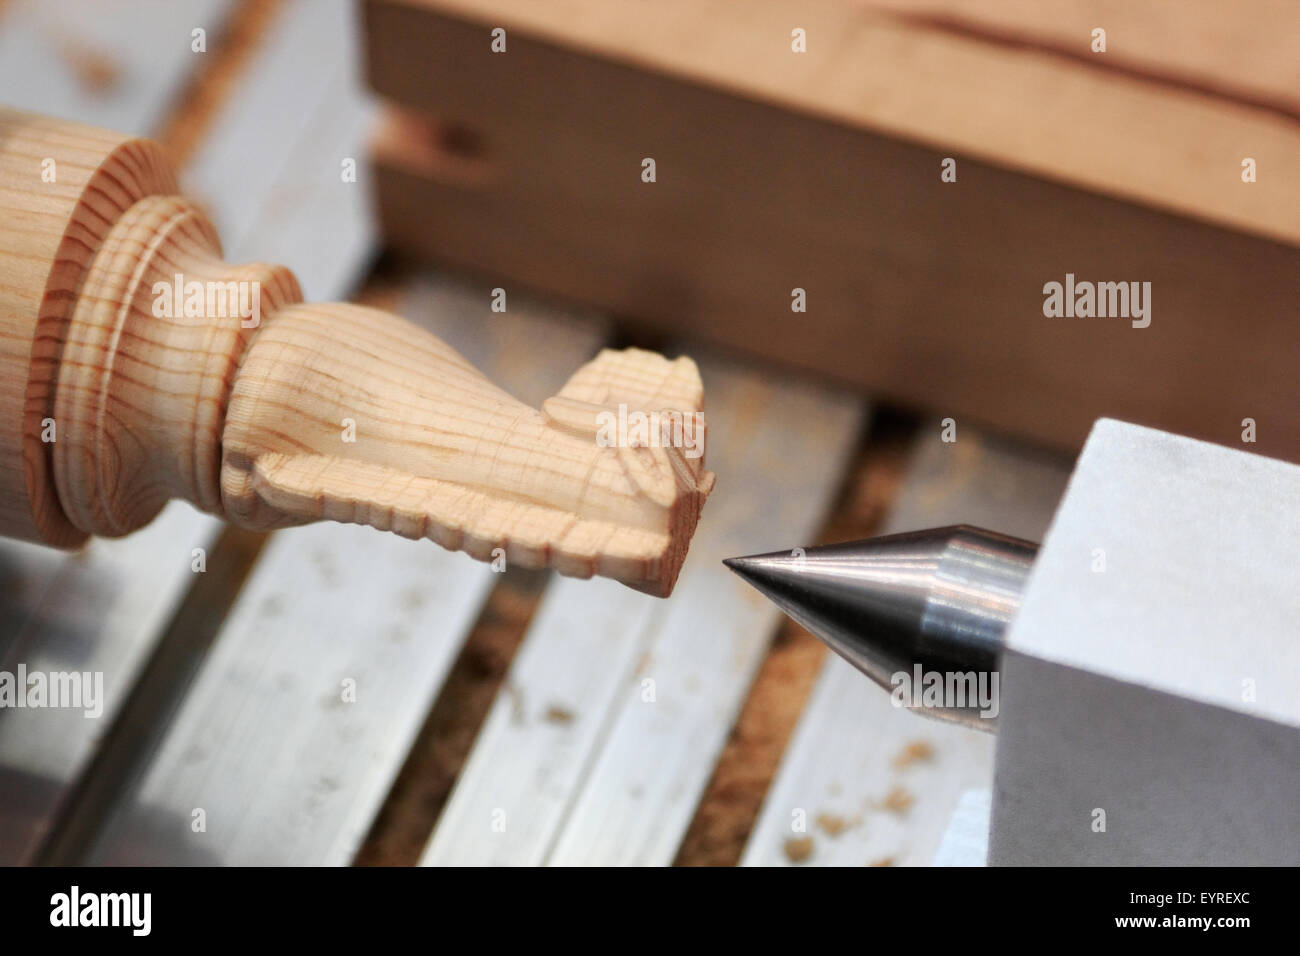 Making chess pieces out of wood on lathe. - Stock Image